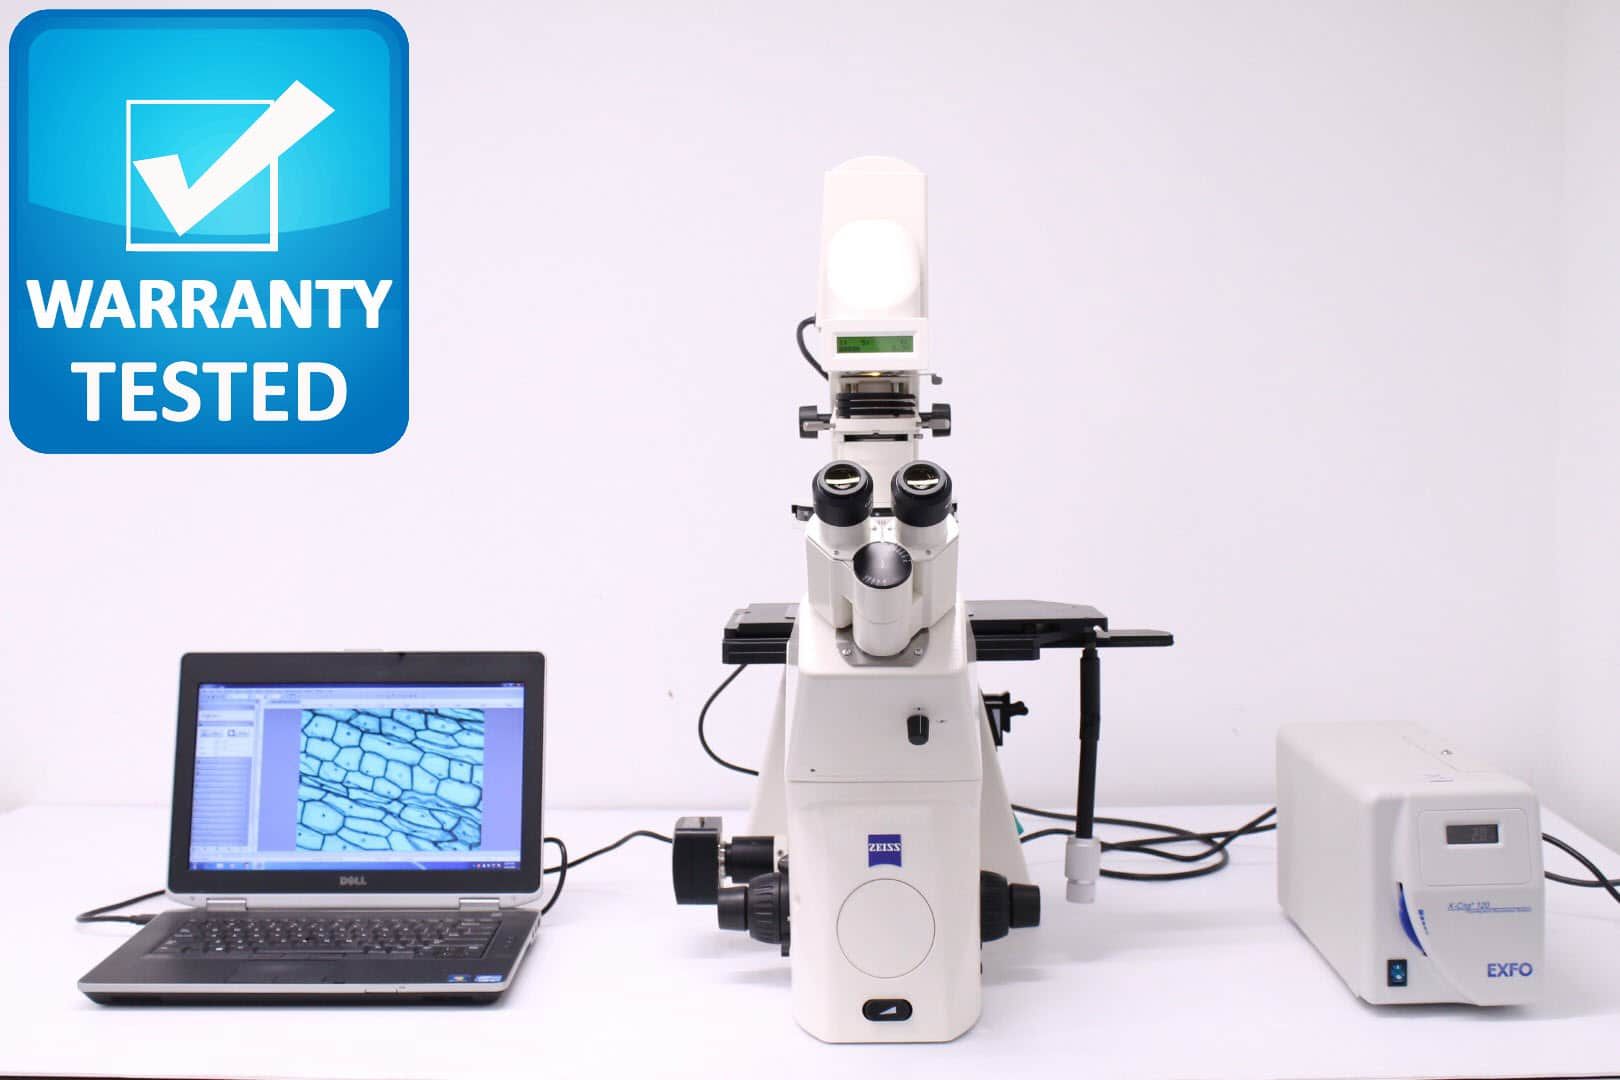 Zeiss Axiovert 200 Fluorescence and Phase Contrast Microscope